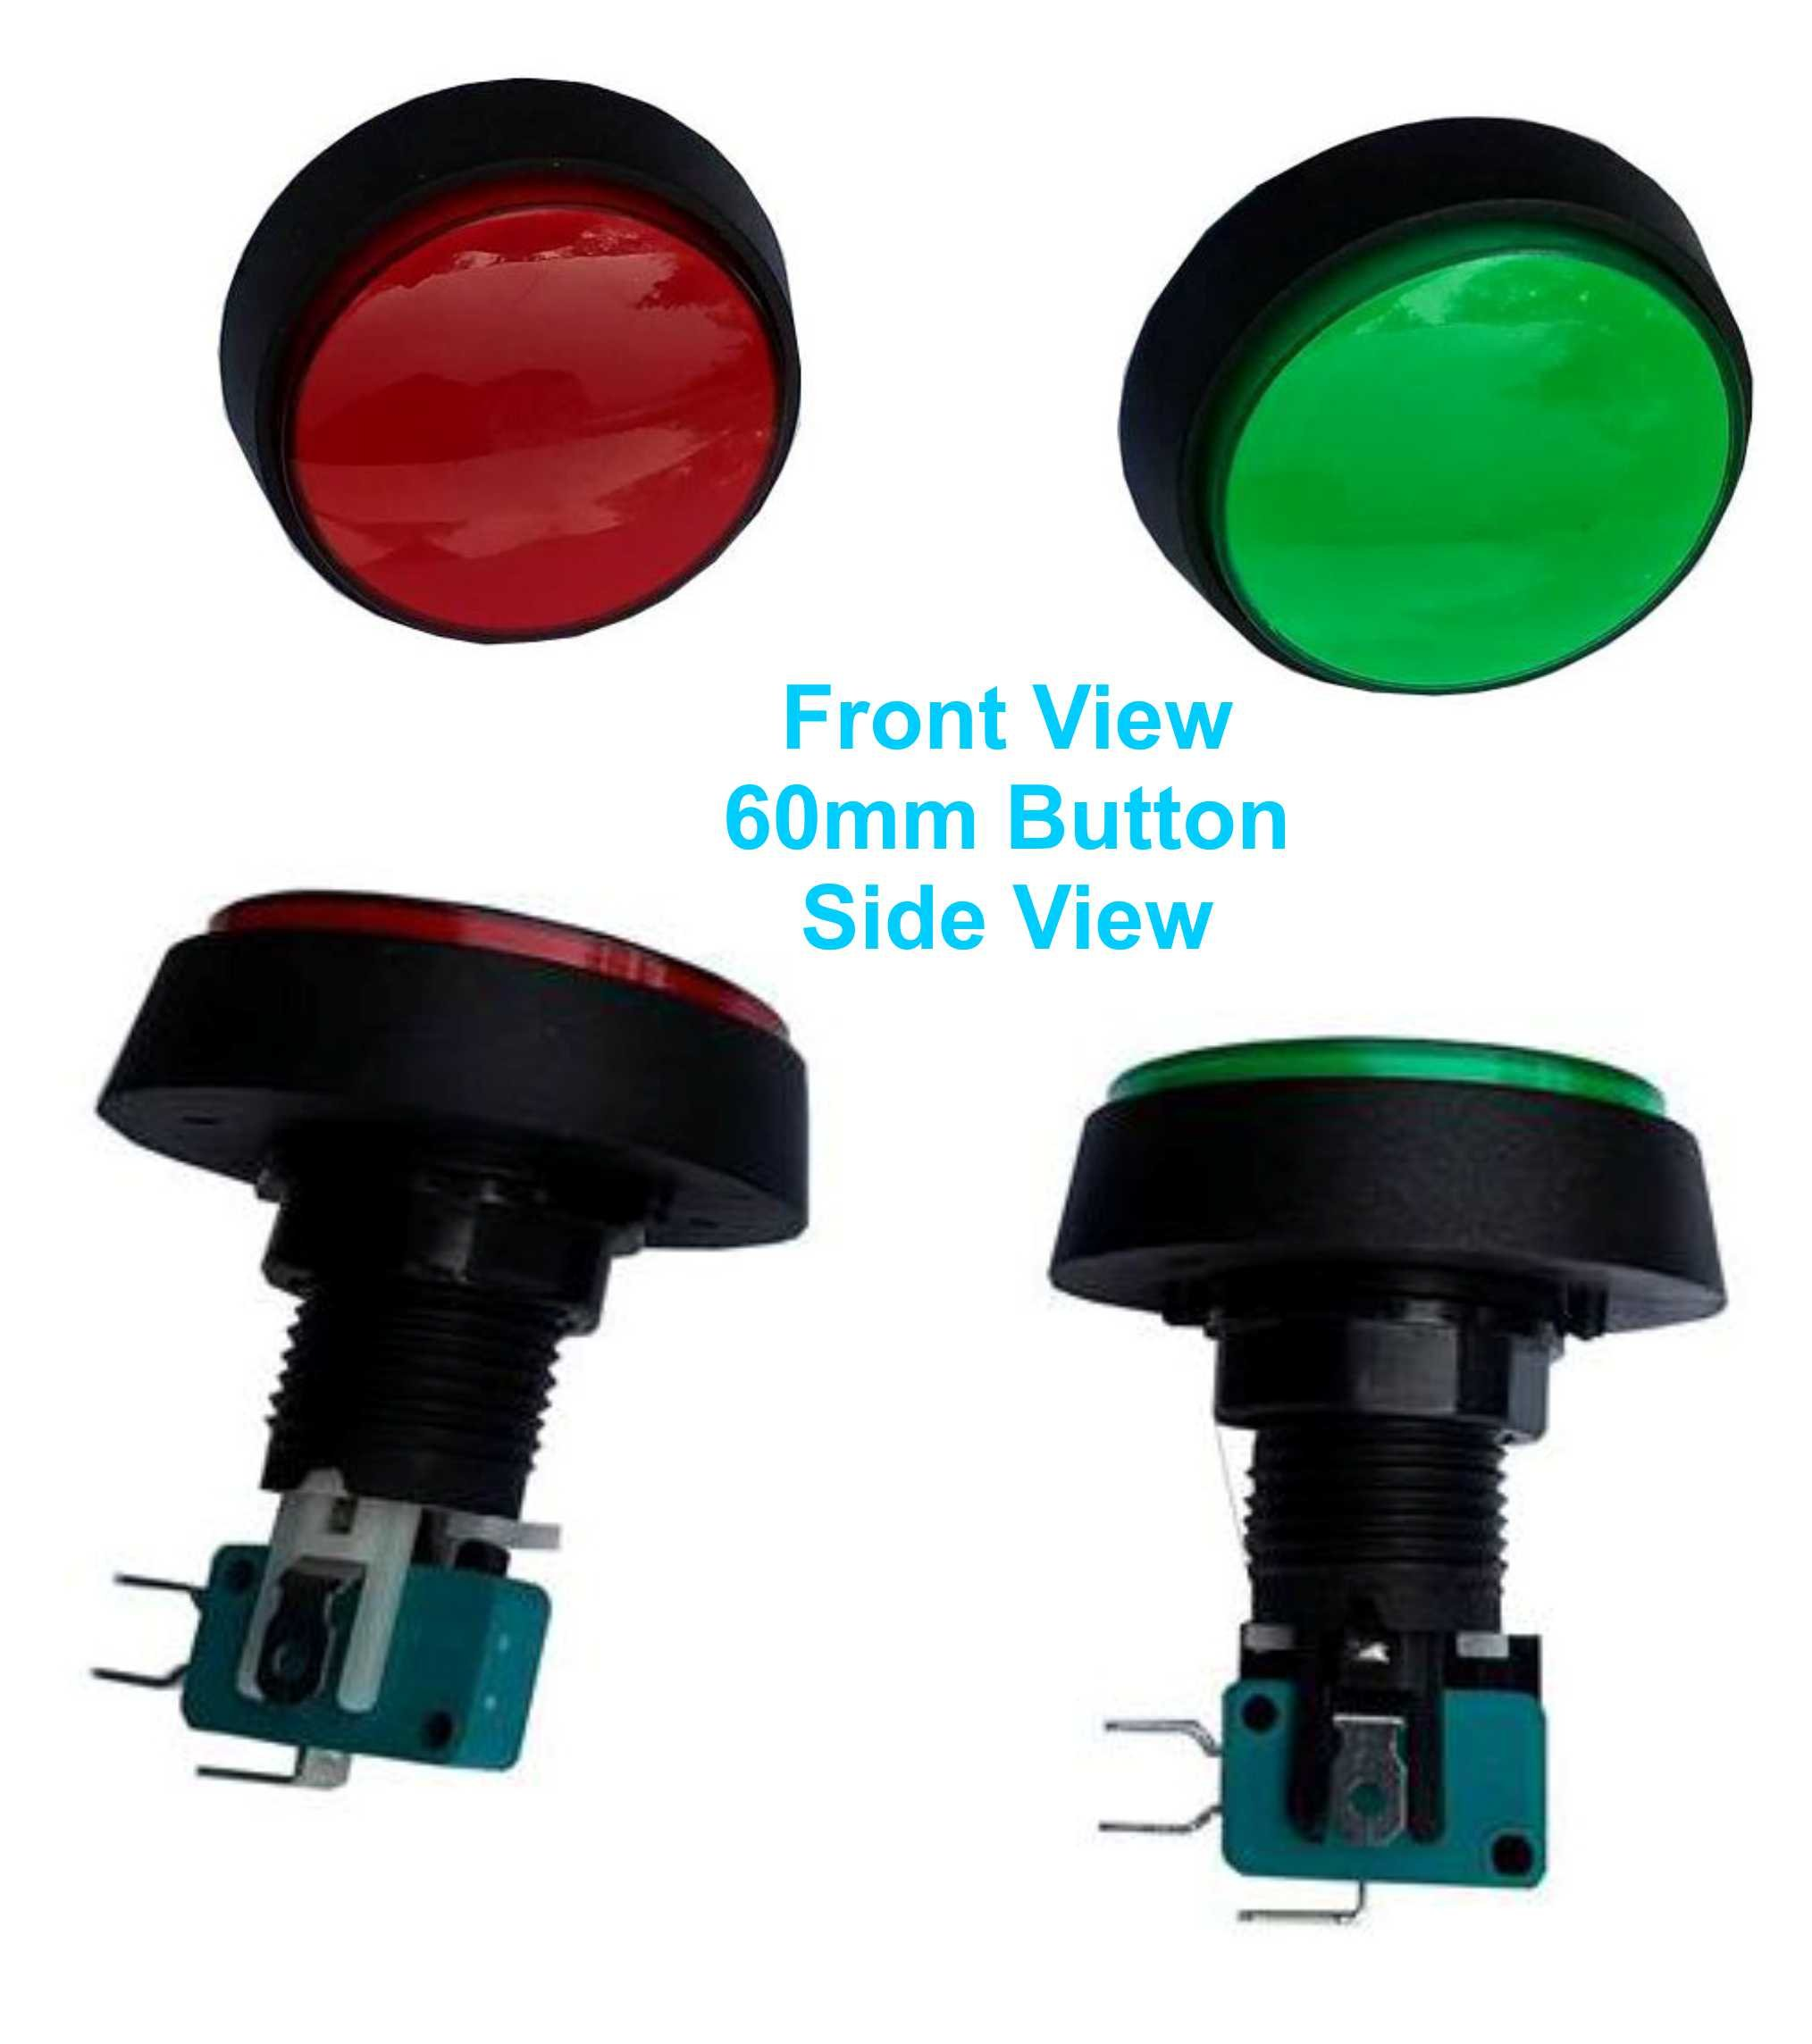 Uxcell Arcade Game buttons with 12VDC LED lamp Illuminated Momentary Push Button SPDT Micro Switch (Set of 2)